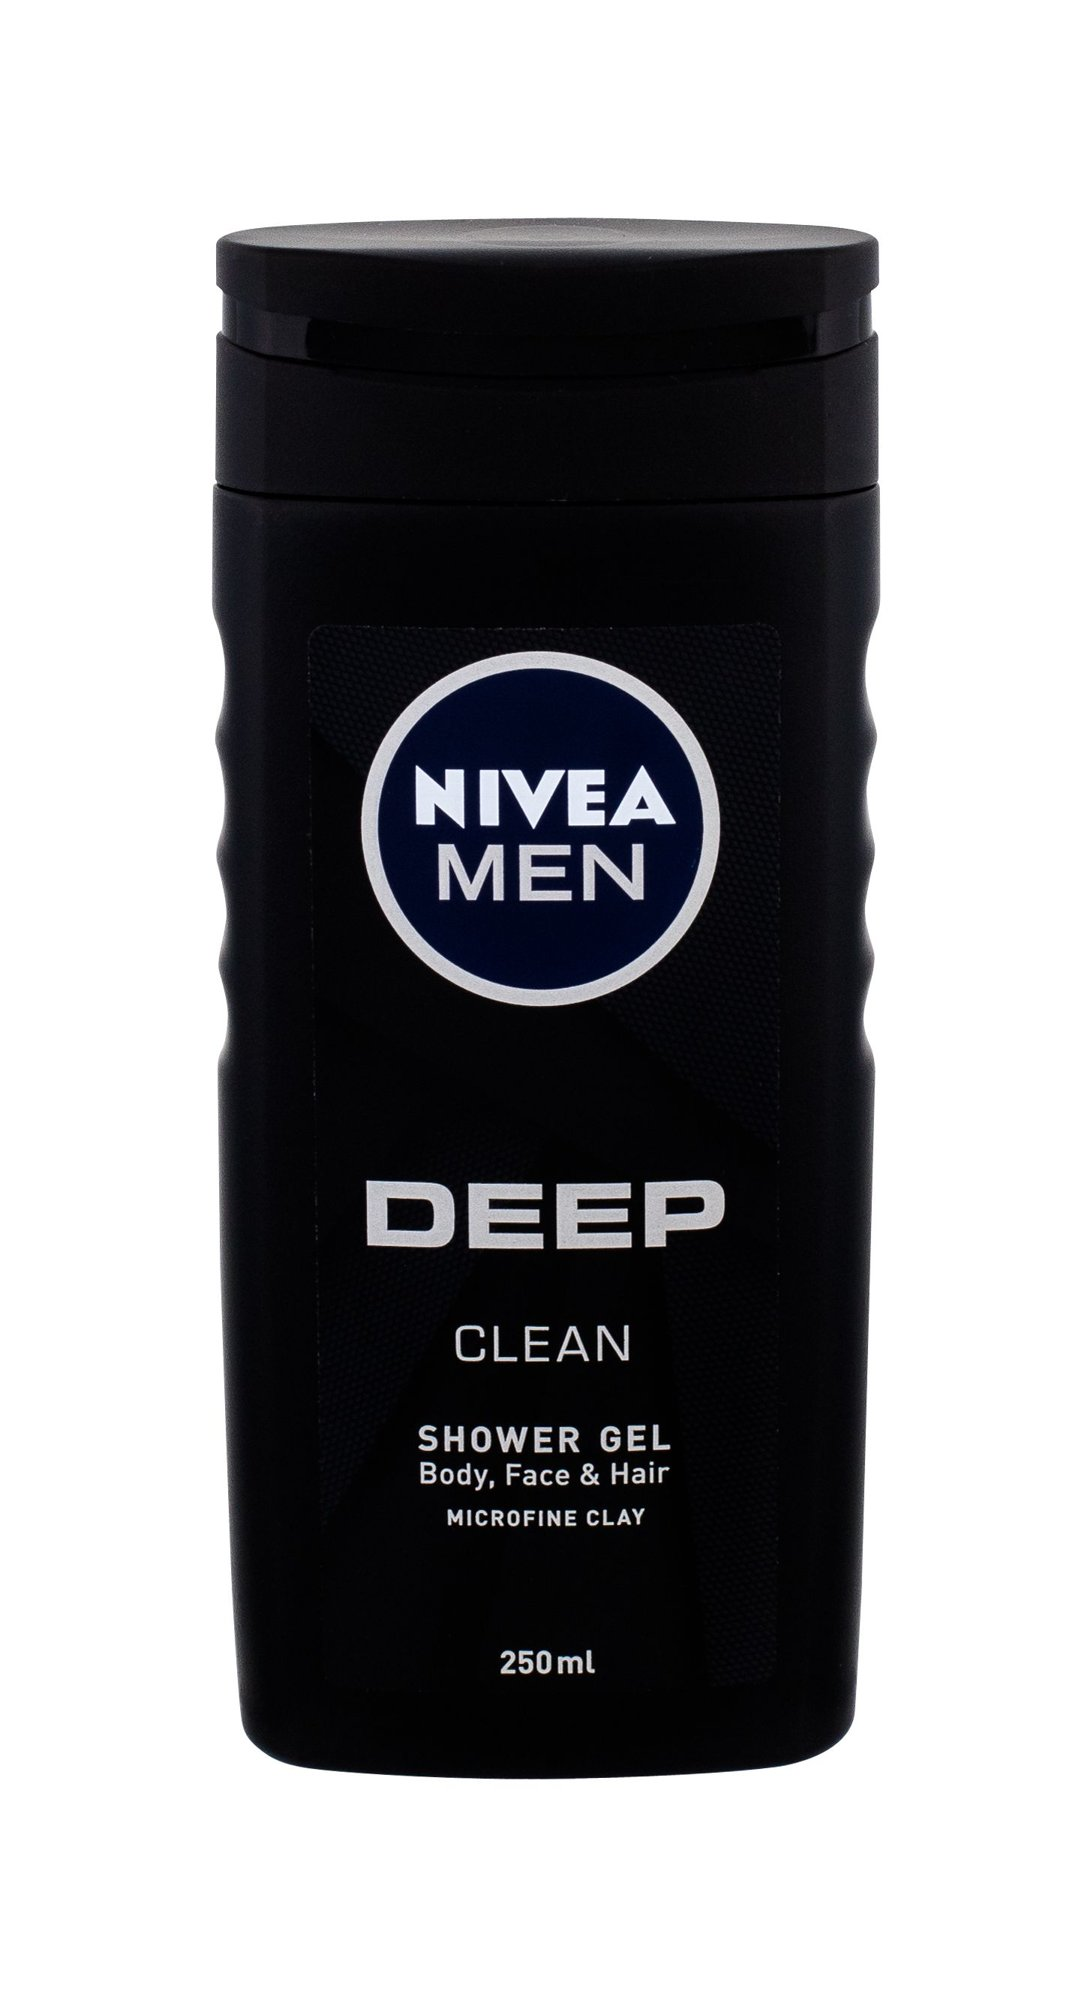 Nivea Men Deep Shower Gel 250ml